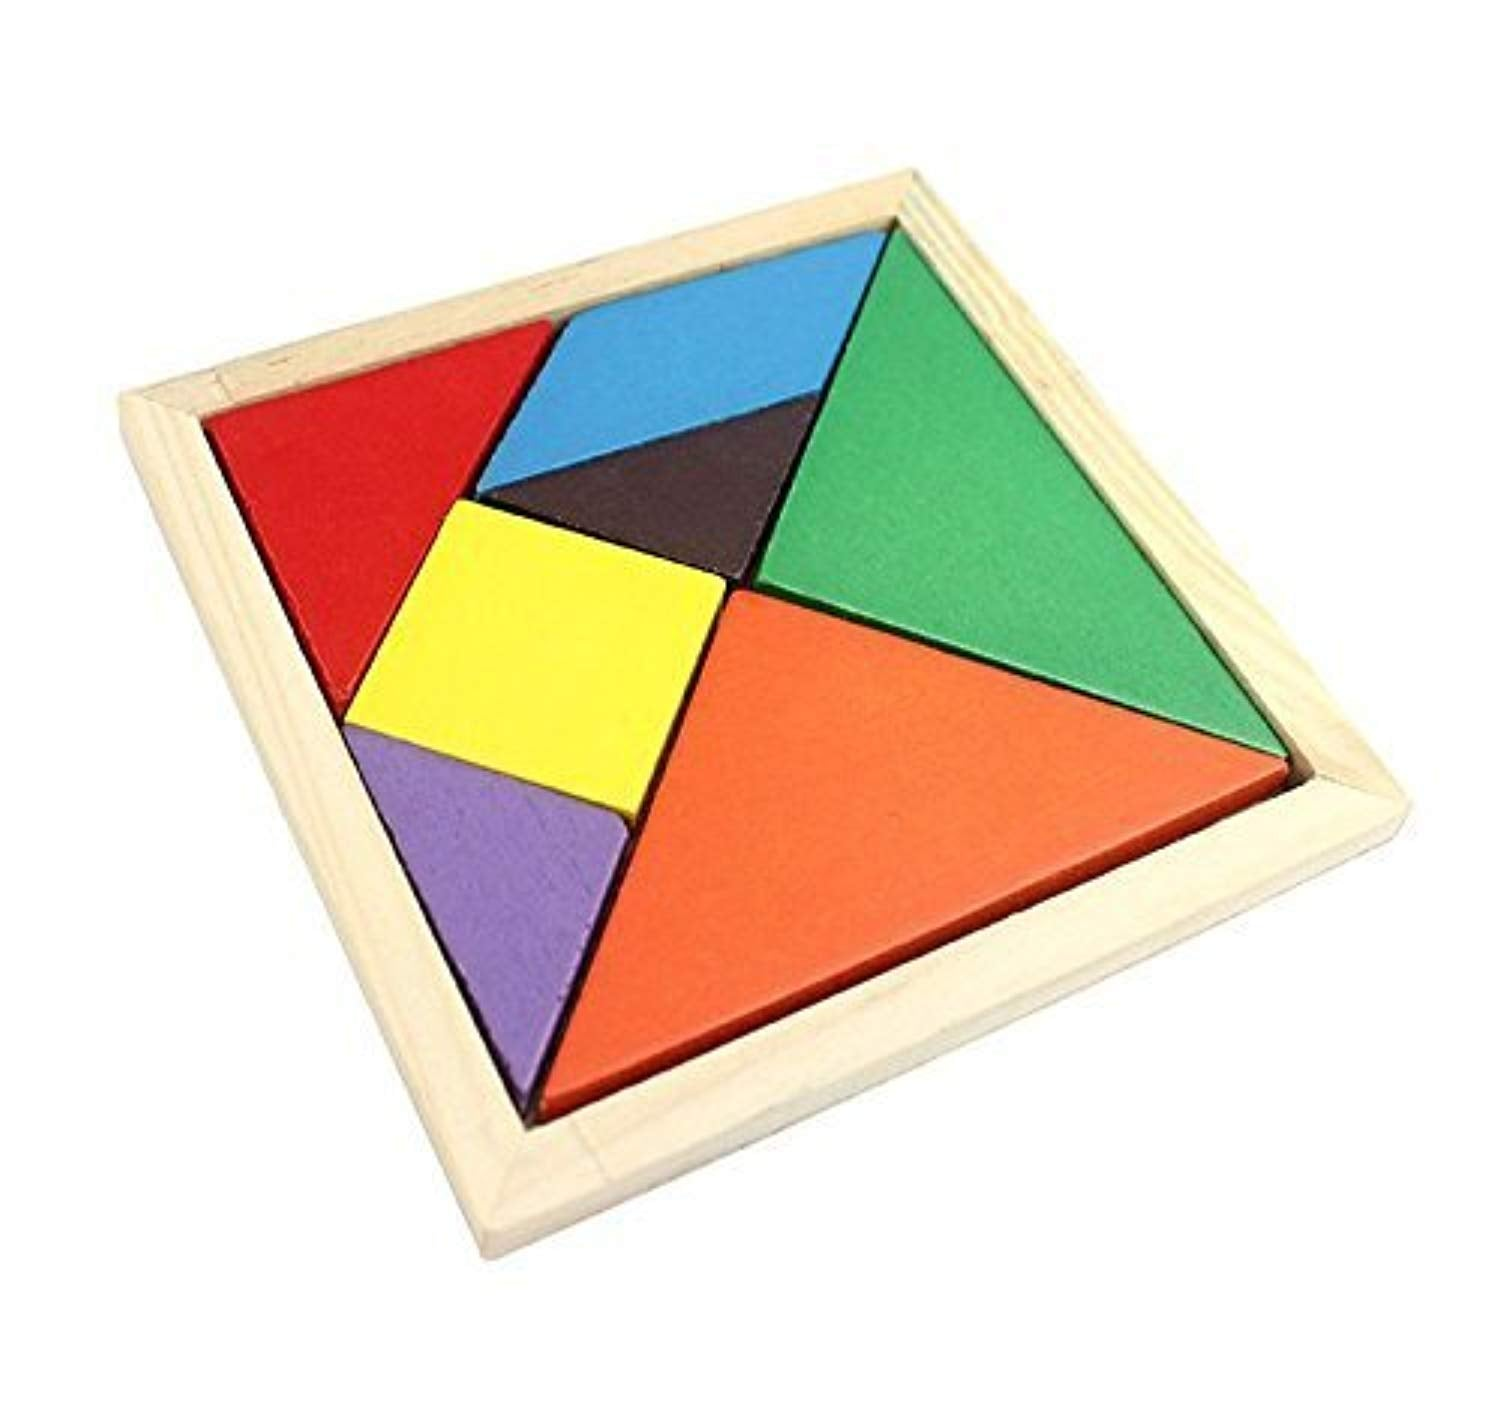 Wooden Tangram 7 Piece Puzzle Square Iq Game Brain Teaser Intelligent Toy